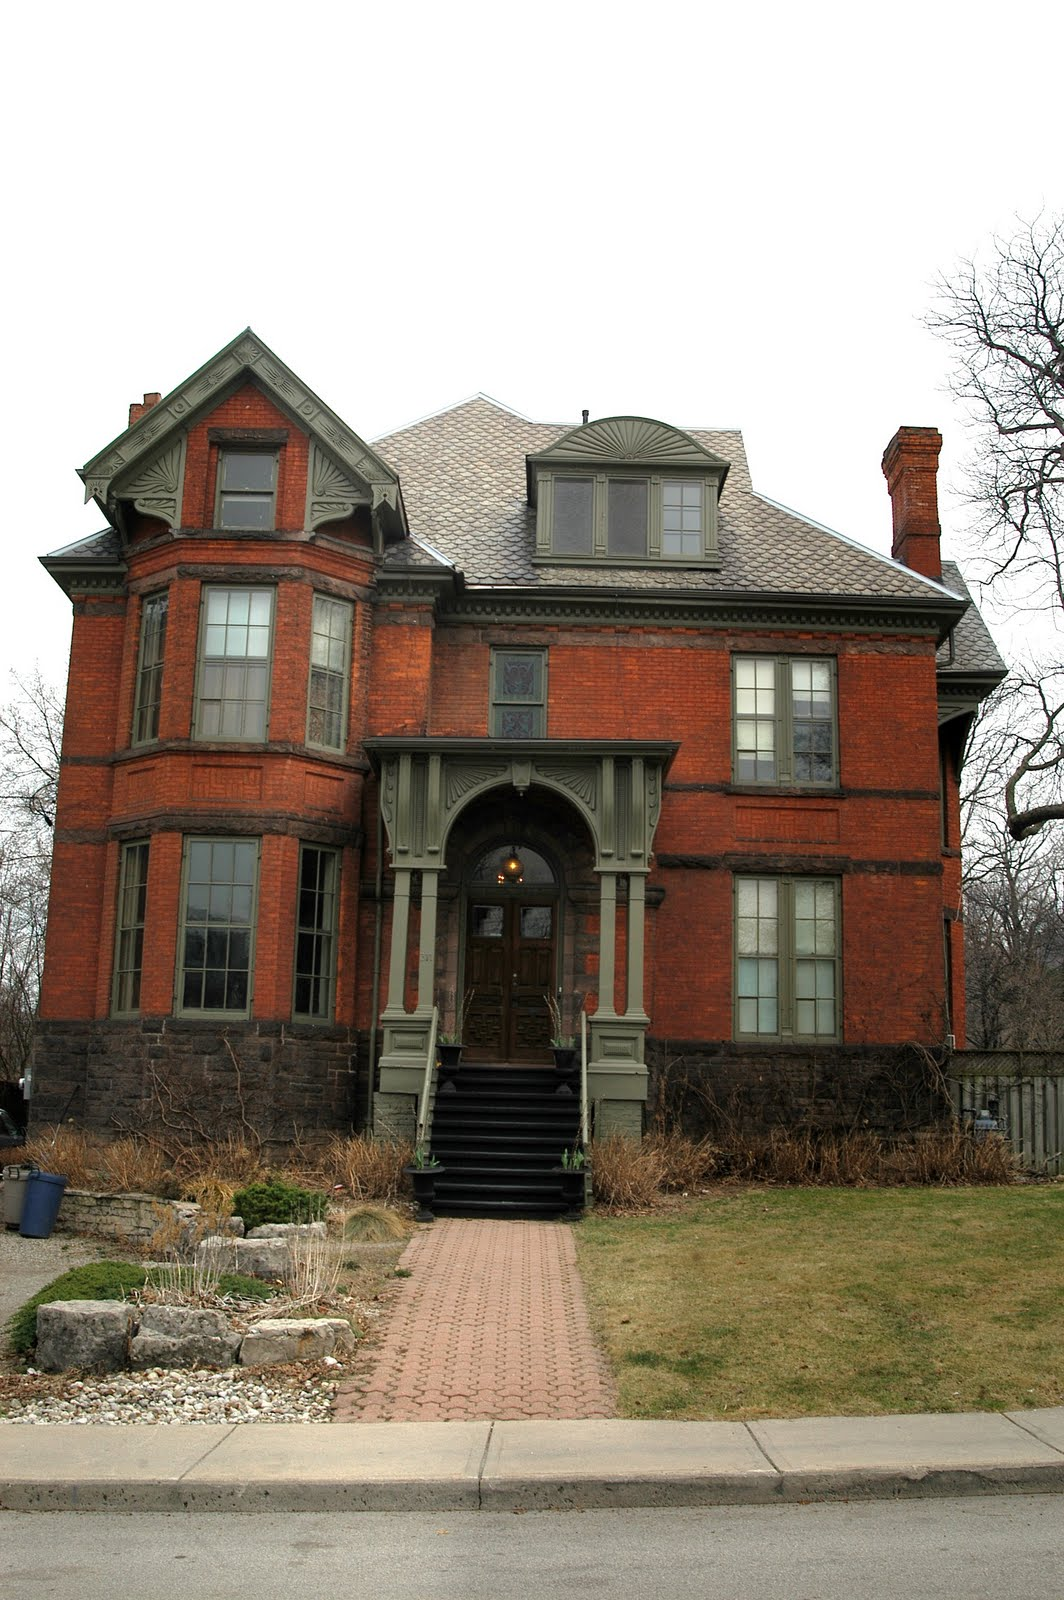 A daily victorian red brick queen anne hamilton ontario for Brick victorian house